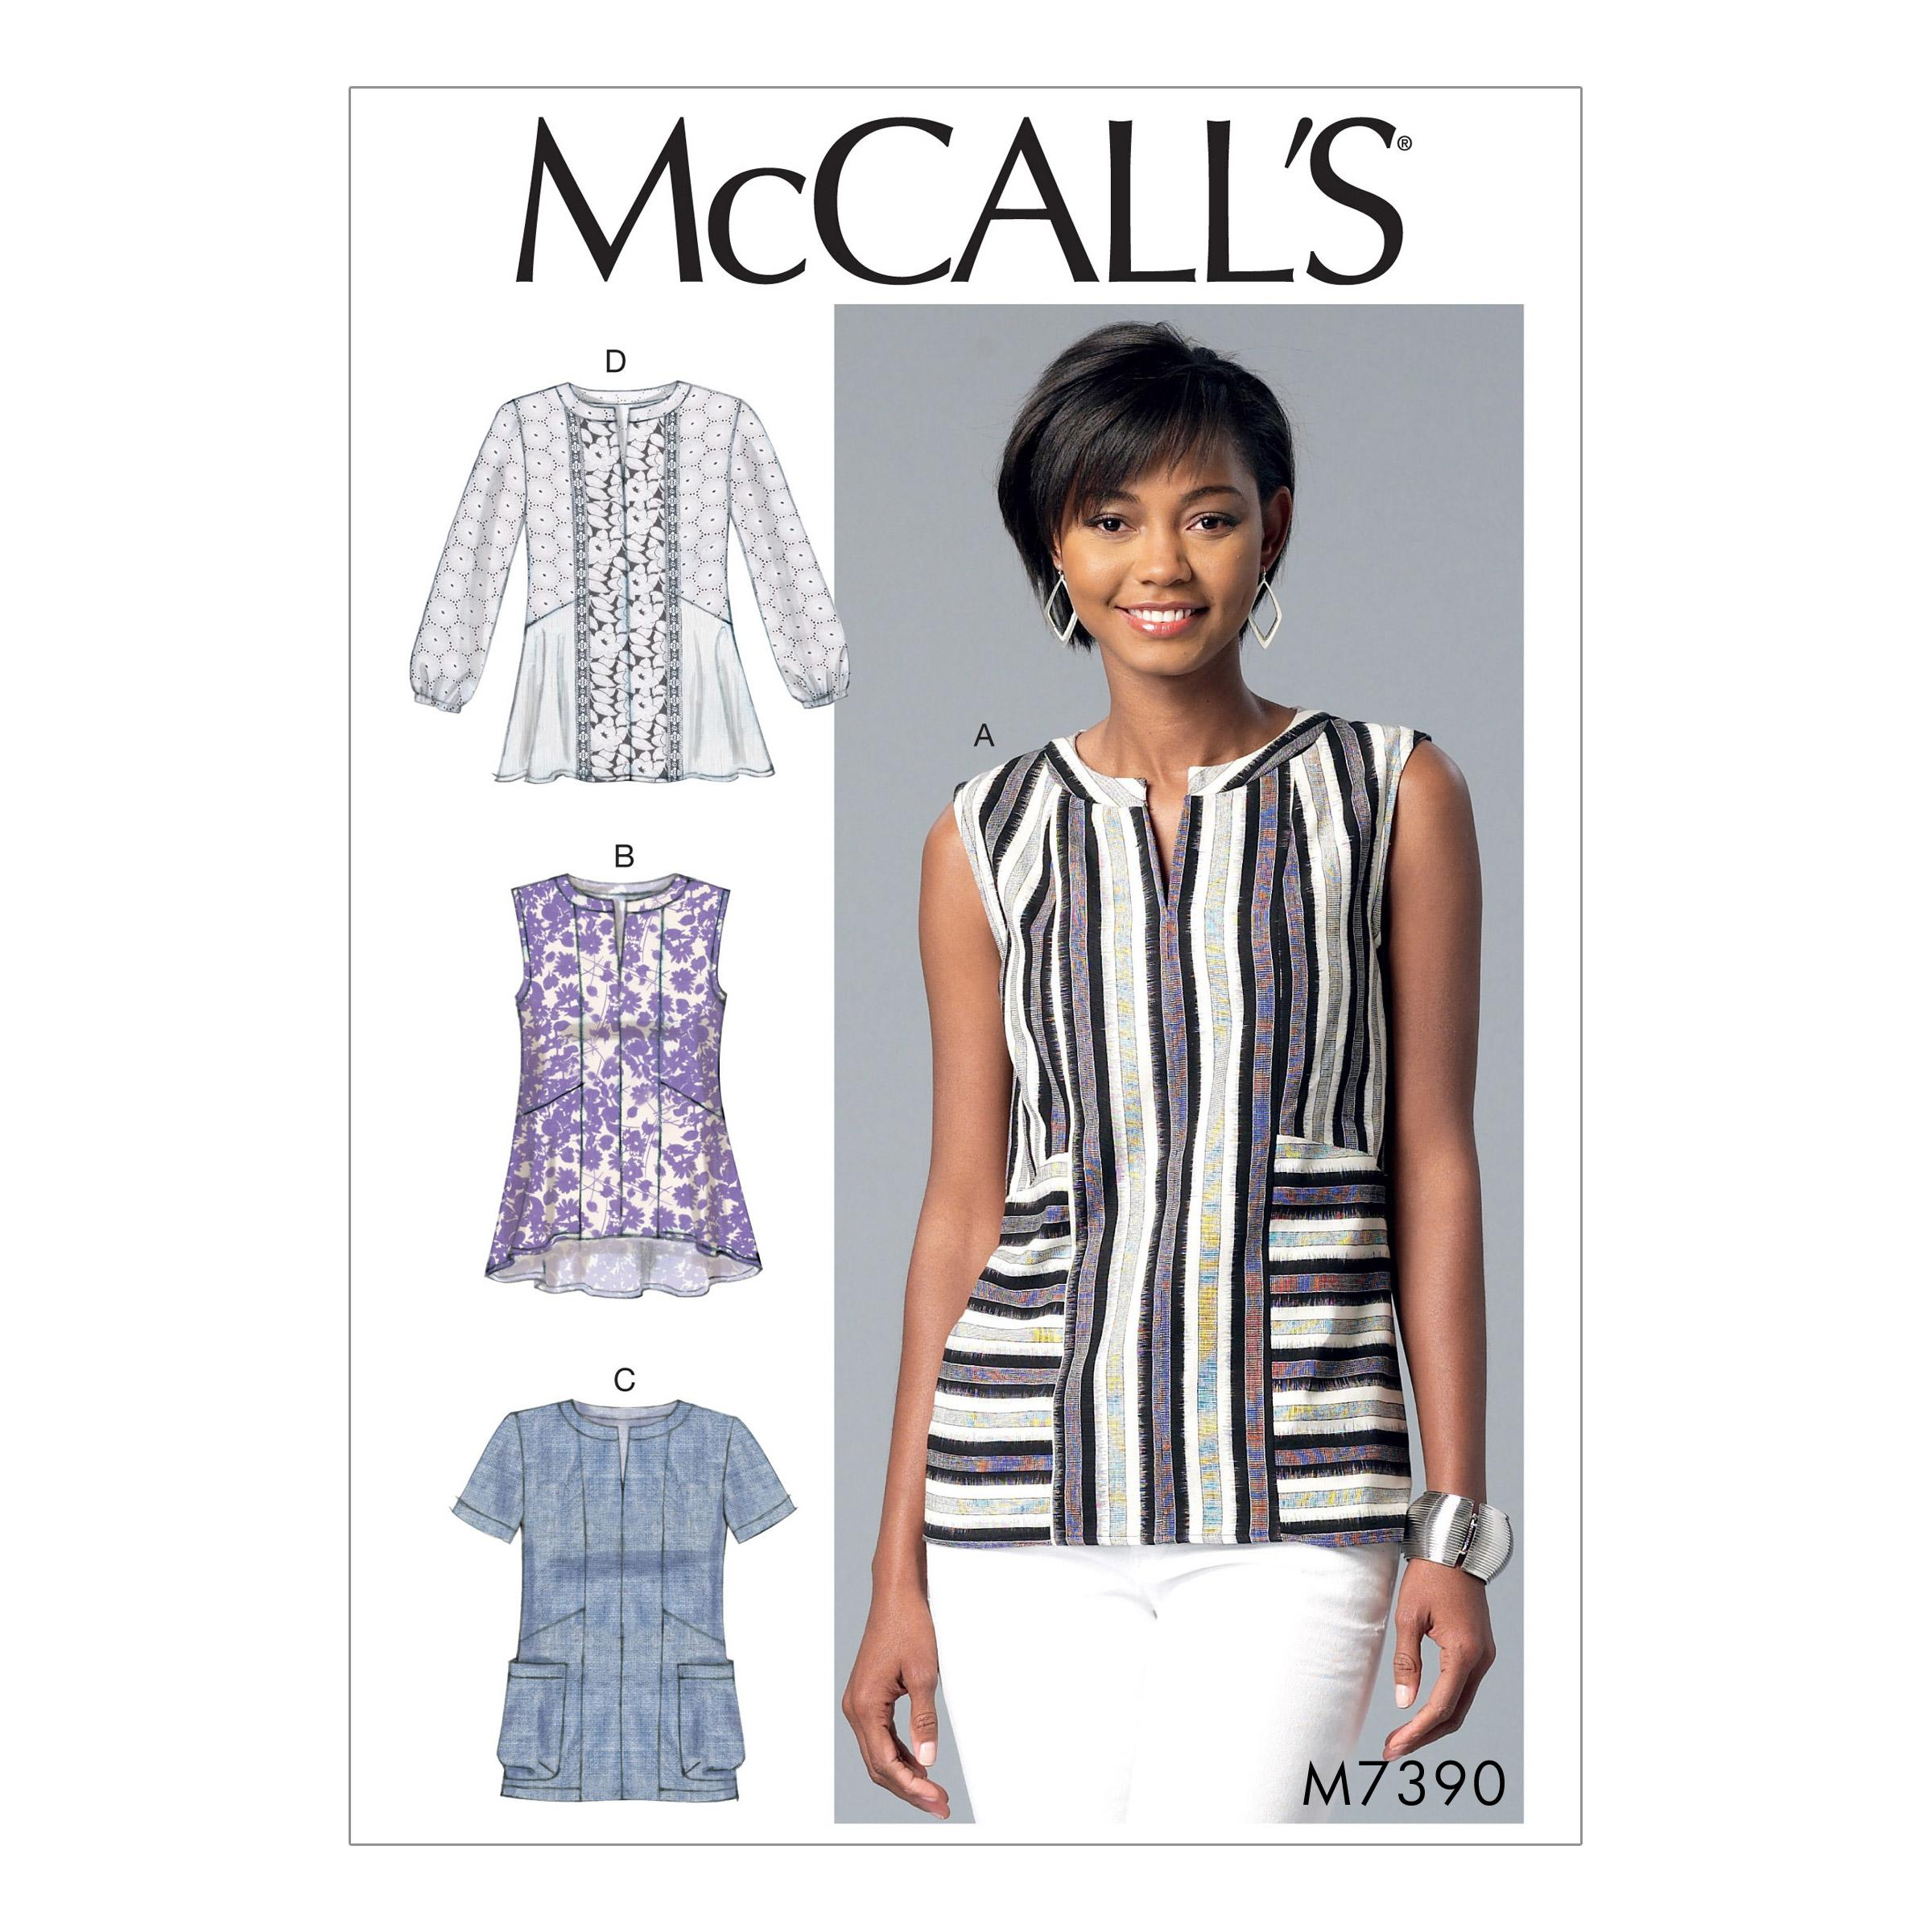 McCalls M7390 Misses Tops